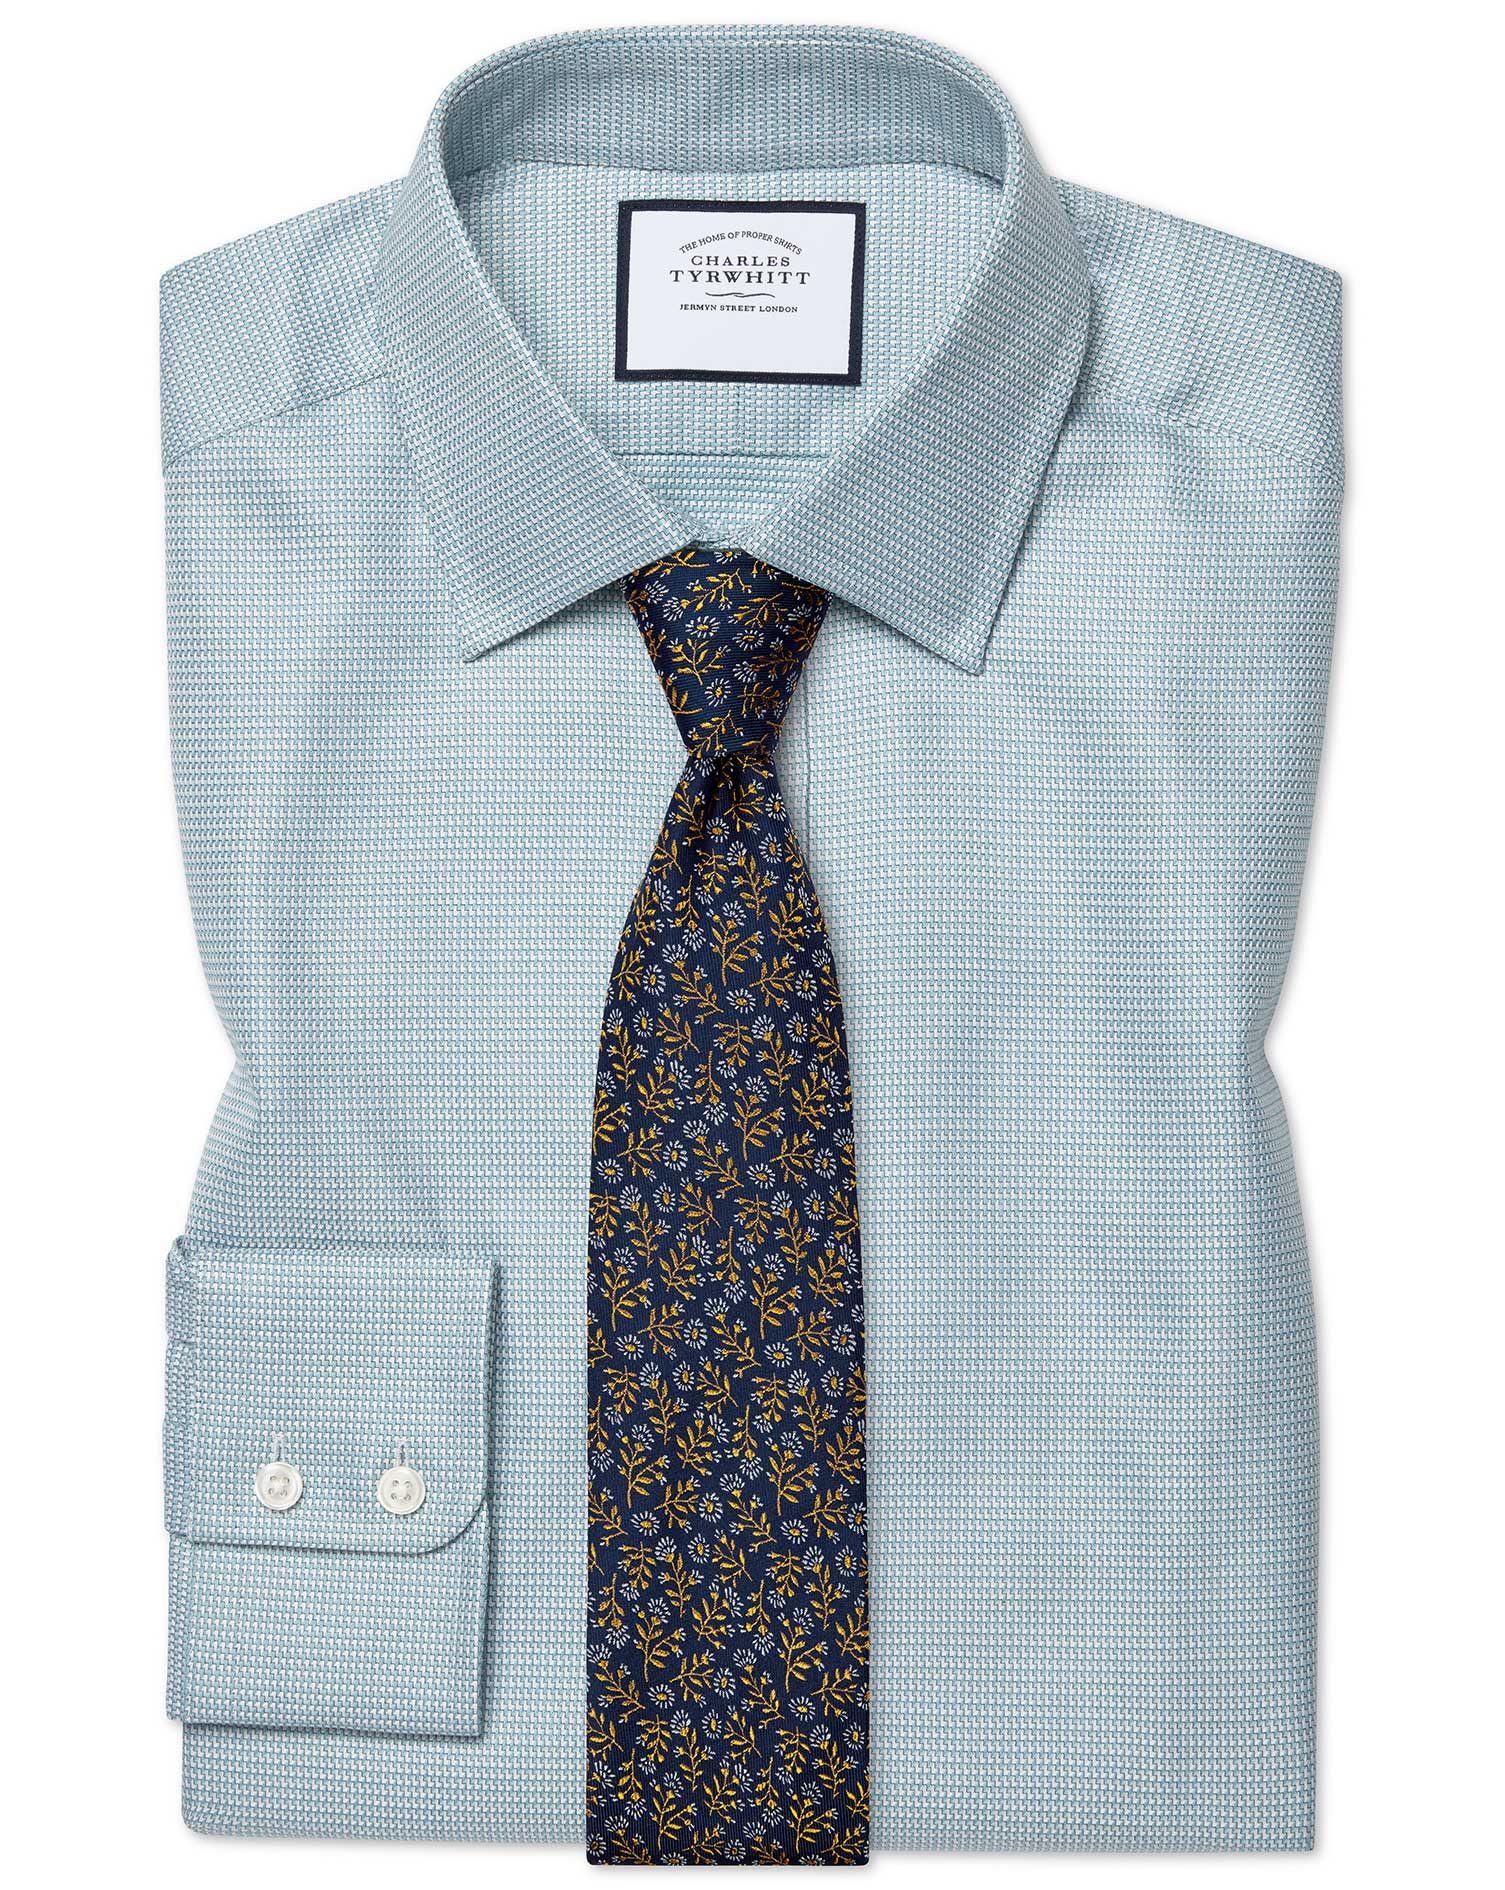 Classic Fit Egyptian Cotton Chevron Teal Formal Shirt Single Cuff Size 17.5/35 by Charles Tyrwhitt